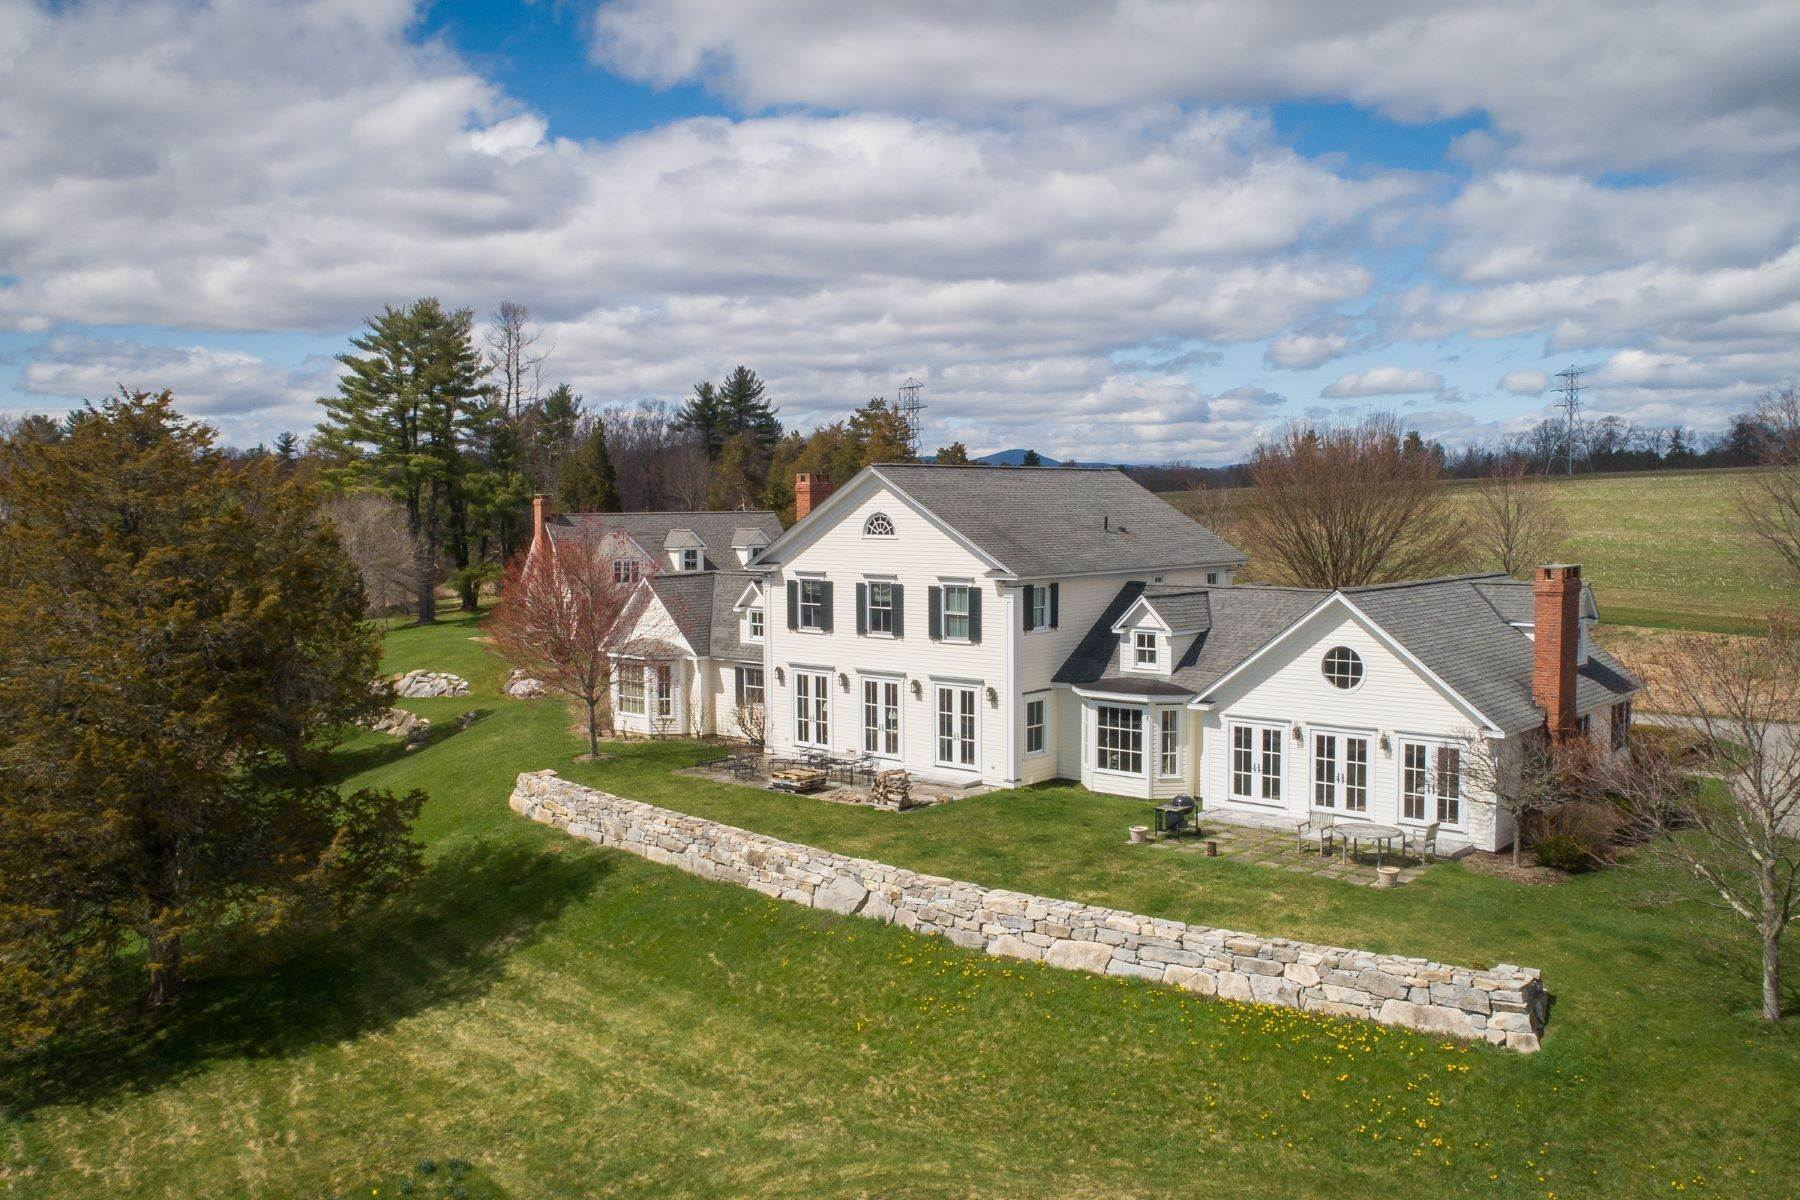 Single Family Homes for Sale at BEAUTIFUL LAKEVILLE ESTATE 180 Lime Rock Road Salisbury, Connecticut 06039 United States